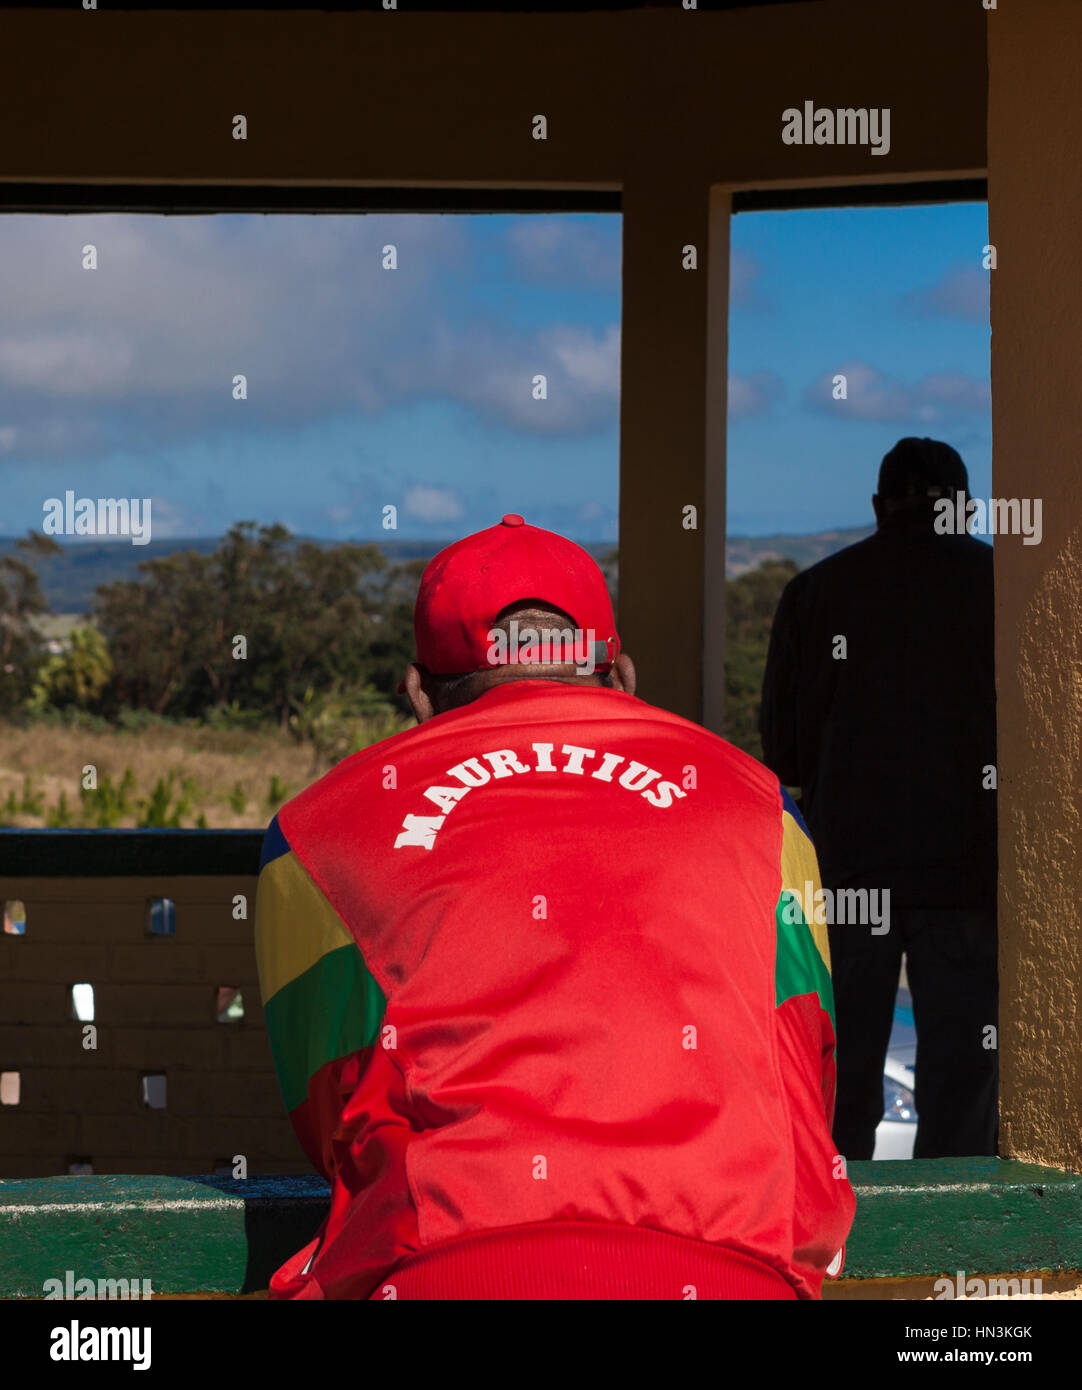 Close up rear view of man wearing red tracksuit top with the word 'Mauritius' on back, Mauritius, Africa - Stock Image